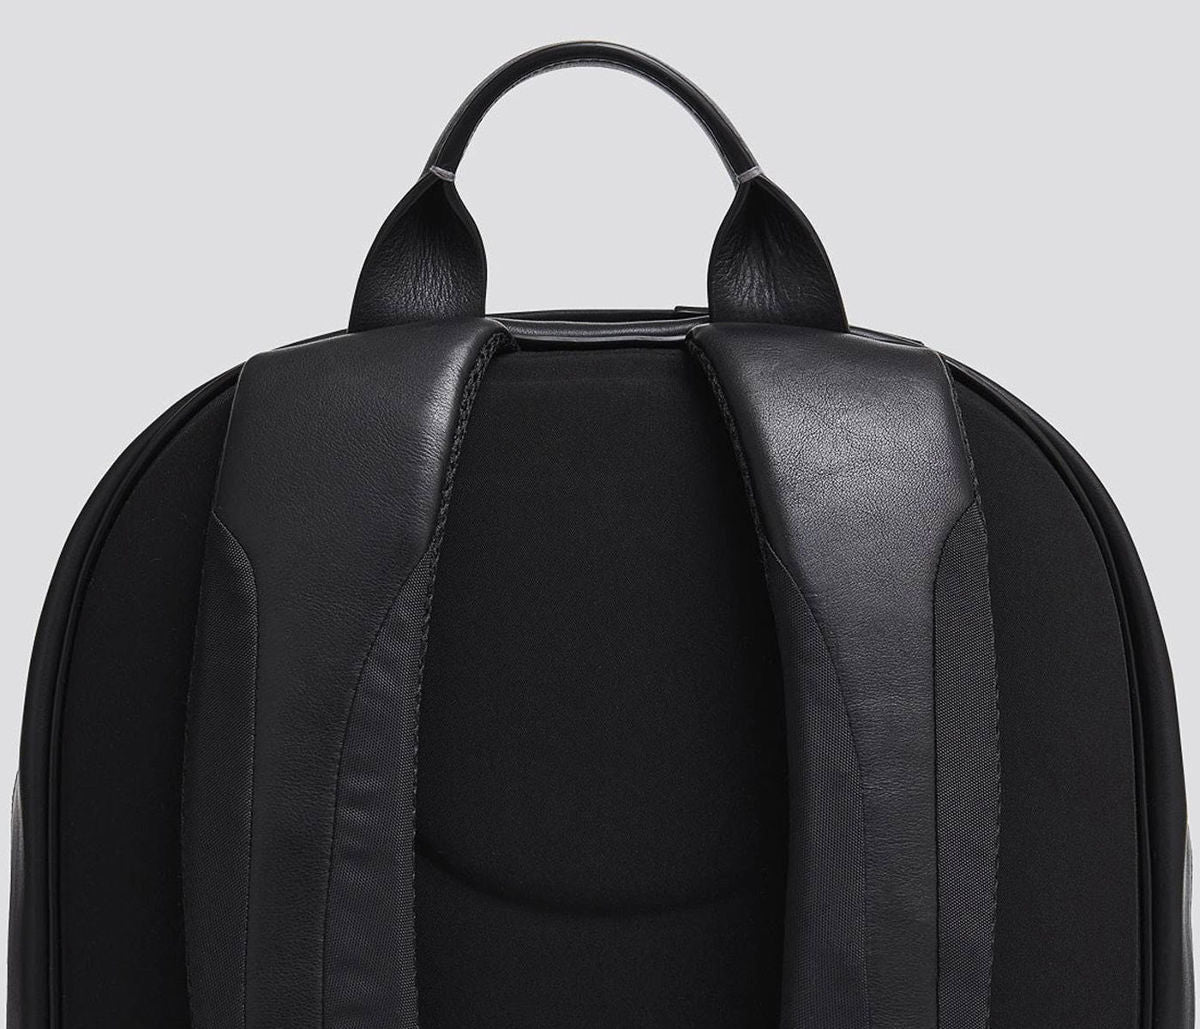 Rucksack shoulder straps and leather handle